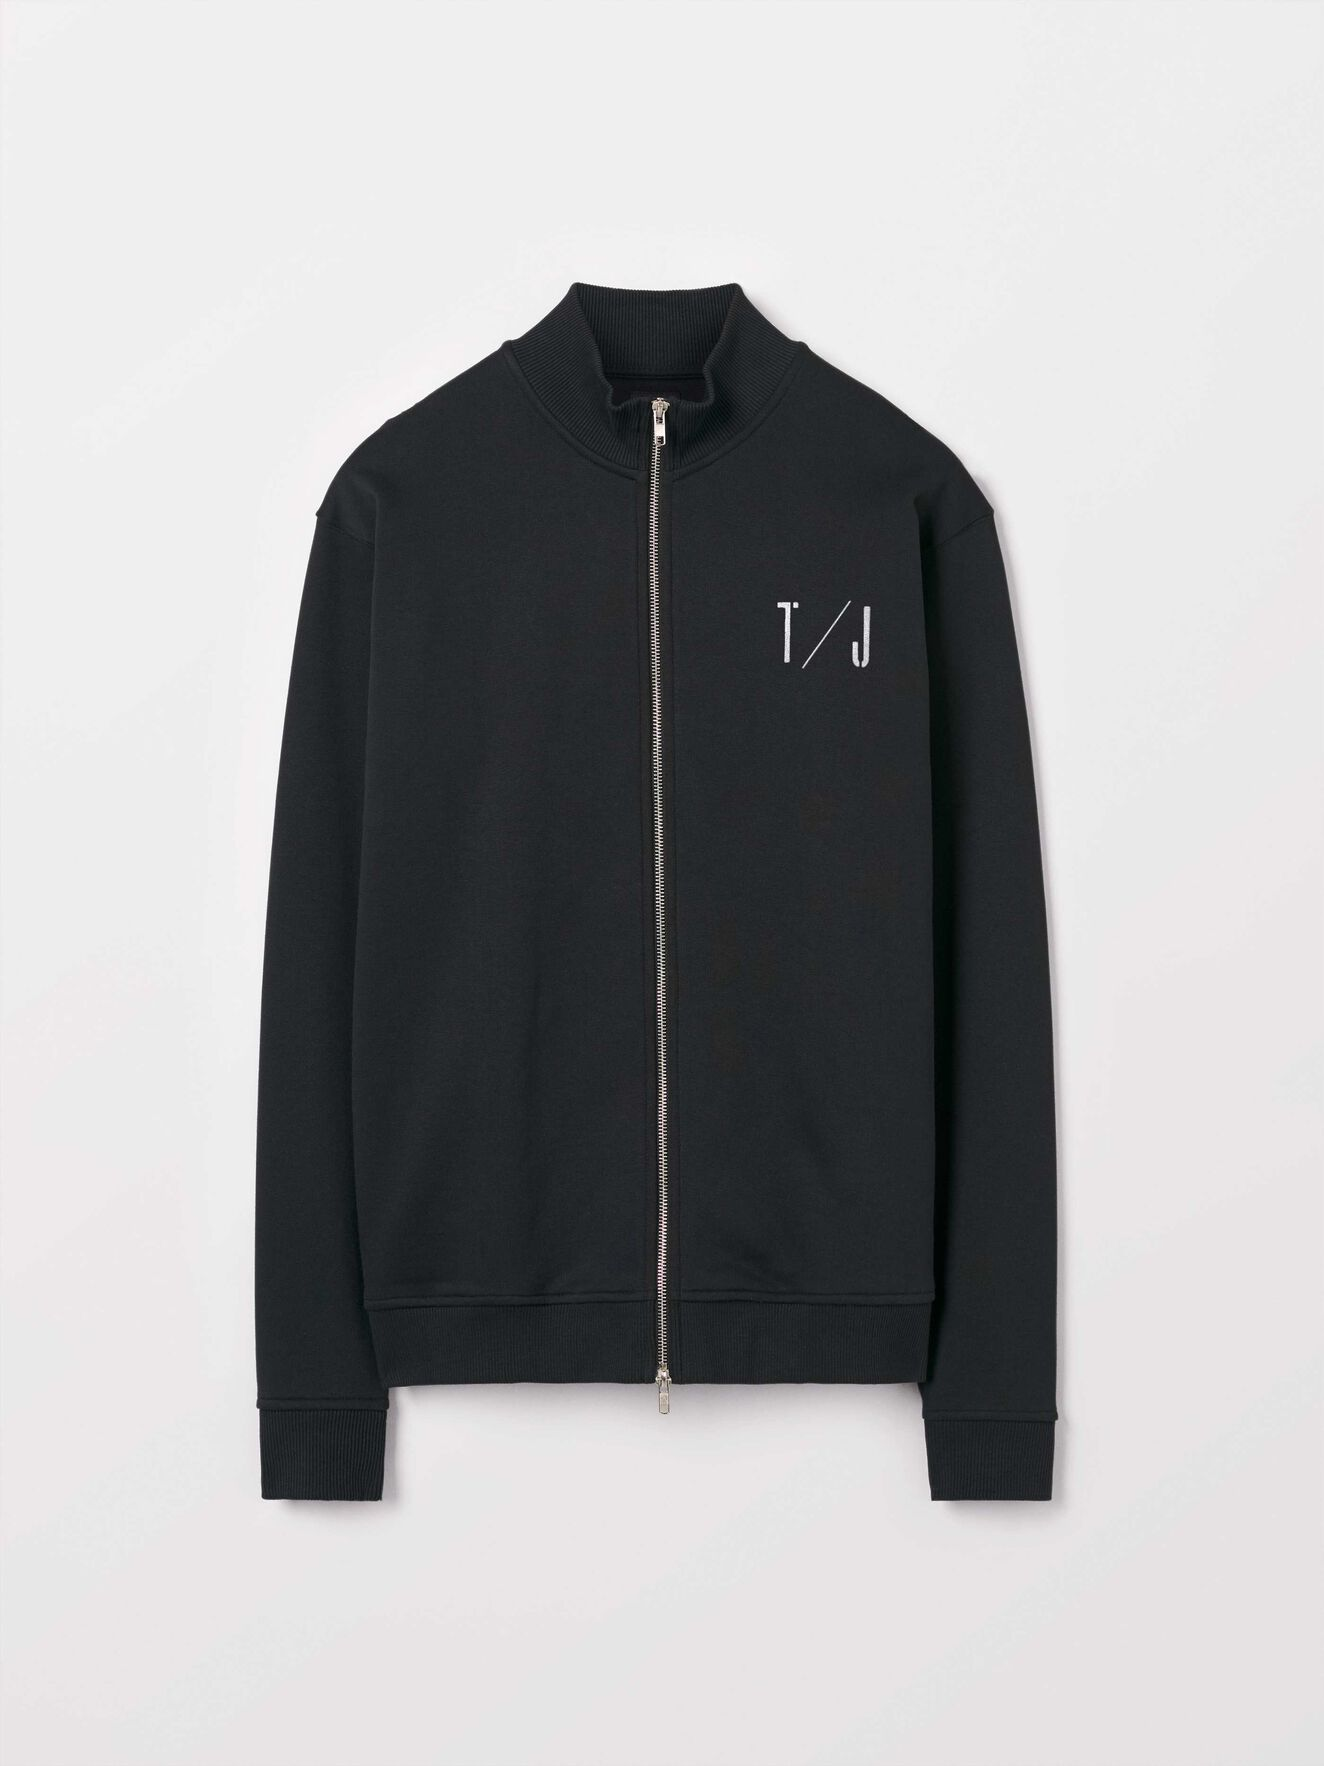 Pras Sweatshirt in Black from Tiger of Sweden